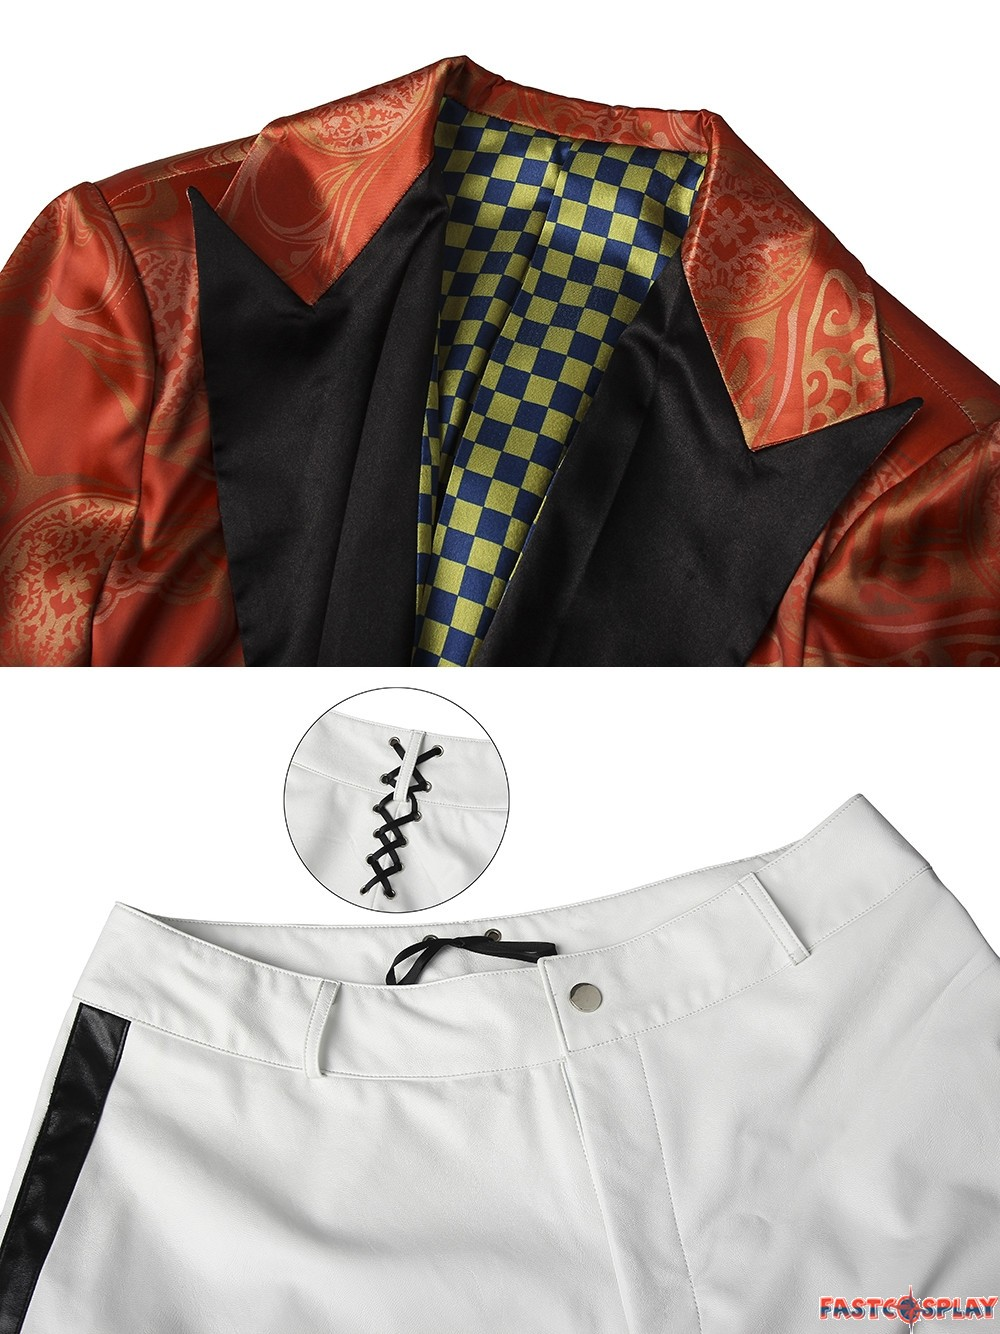 Gotham Joker Jerome Valeska Cosplay Costume Deluxe Version